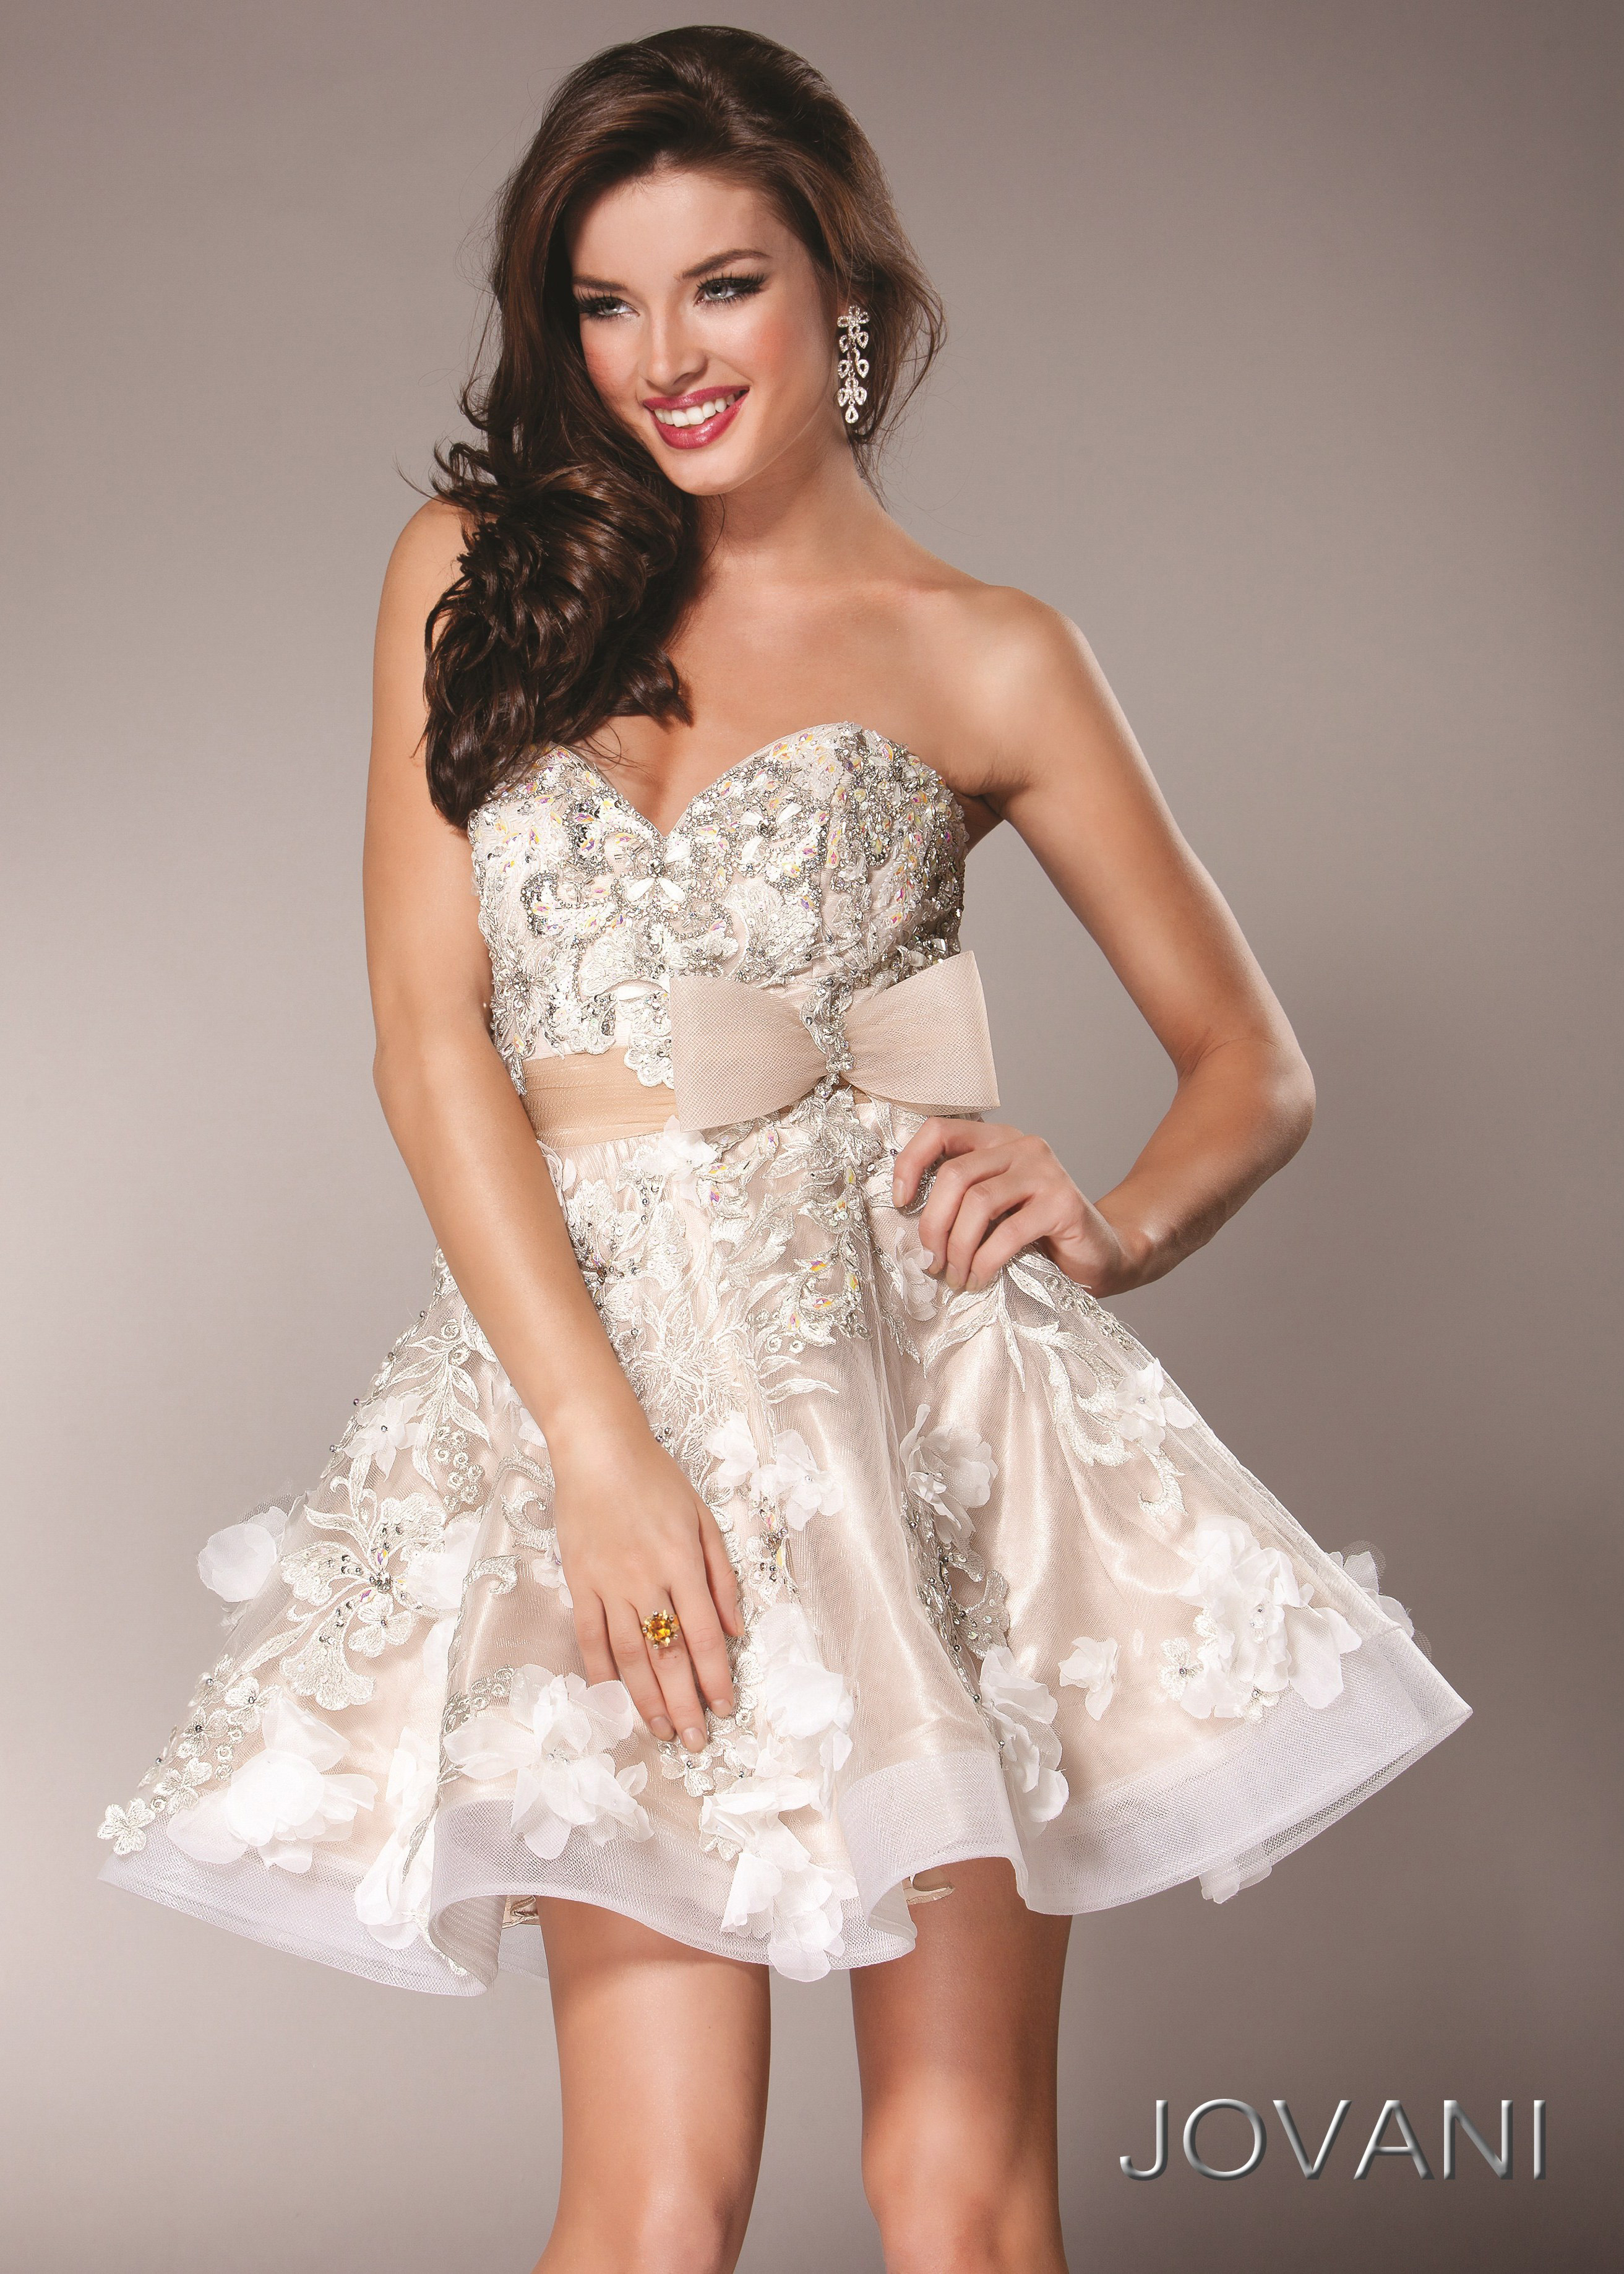 Jovani 2933 - Baby Doll Cocktail Dress - RissyRoos.com